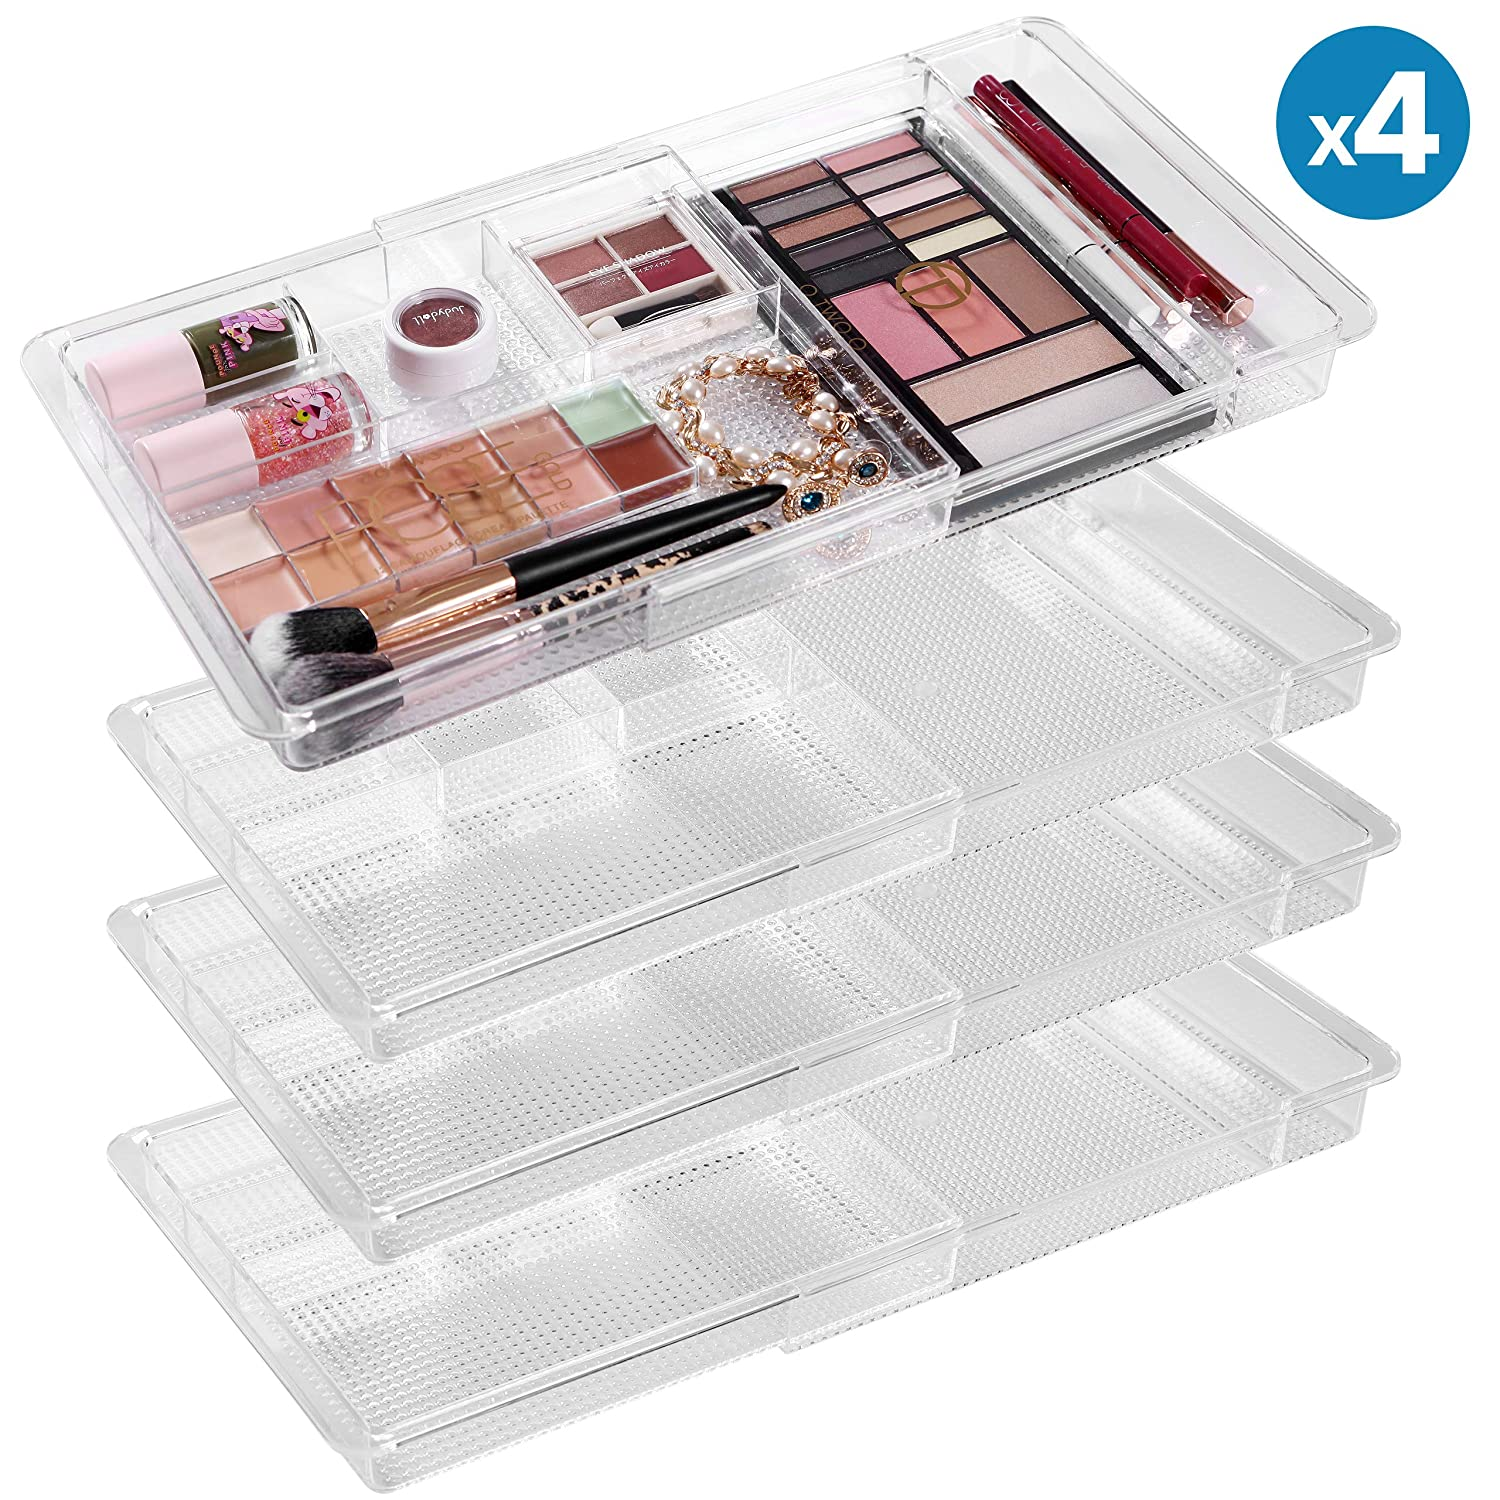 MoMA Expandable Makeup Organizer – 11 x 7.7 x 1.2 Adjustable Makeup Brush Organizer 4 Packs – Clear Plastic Makeup Organizer for Bathroom Drawers, Vanities, Countertops – Scalable Cosmetic Organizer